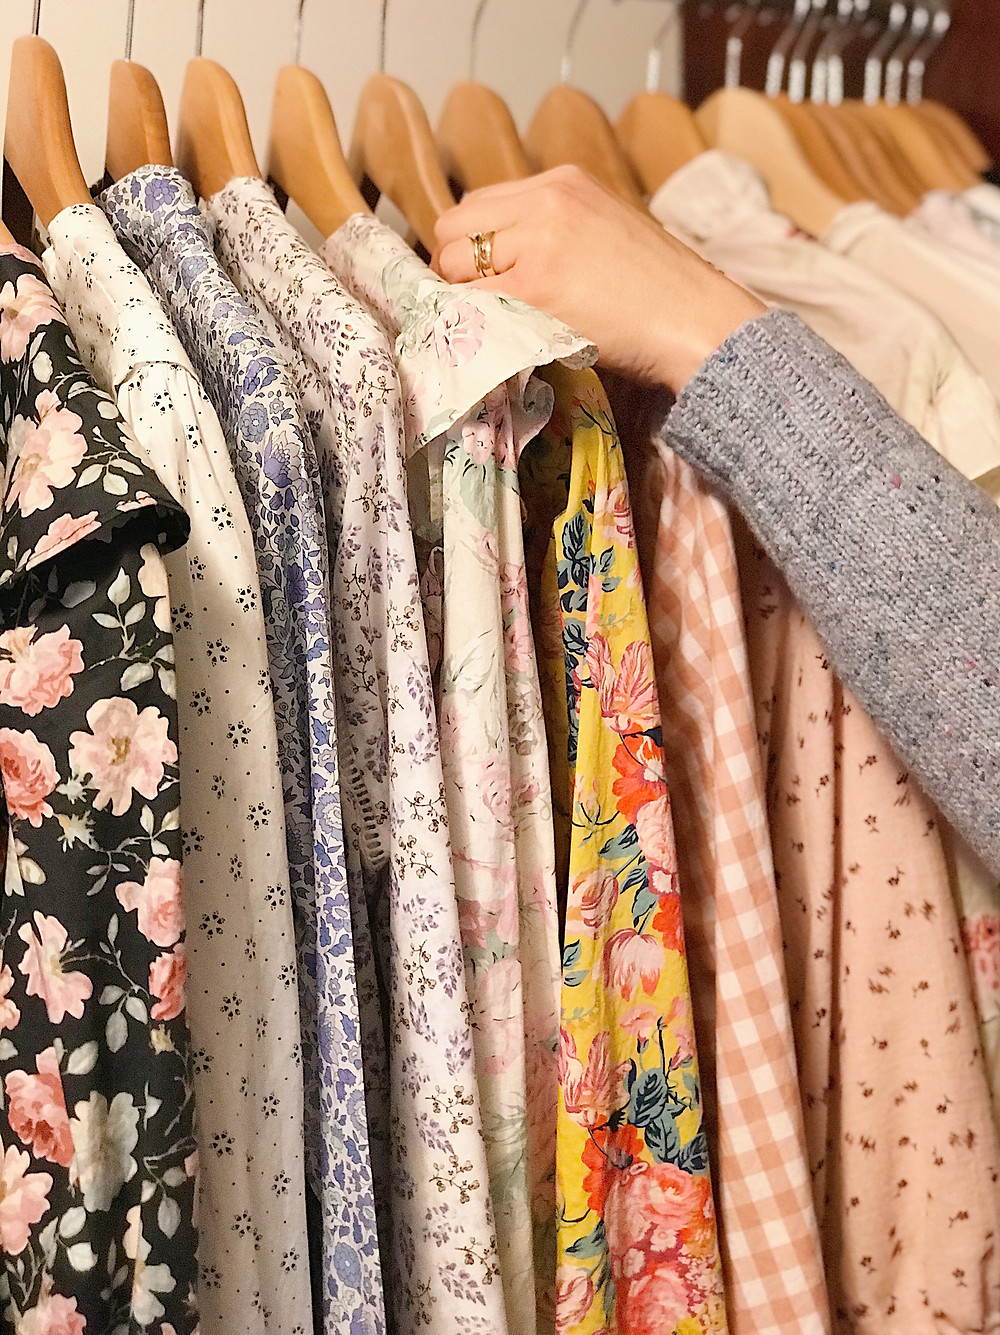 floral blouses hanging in a closet